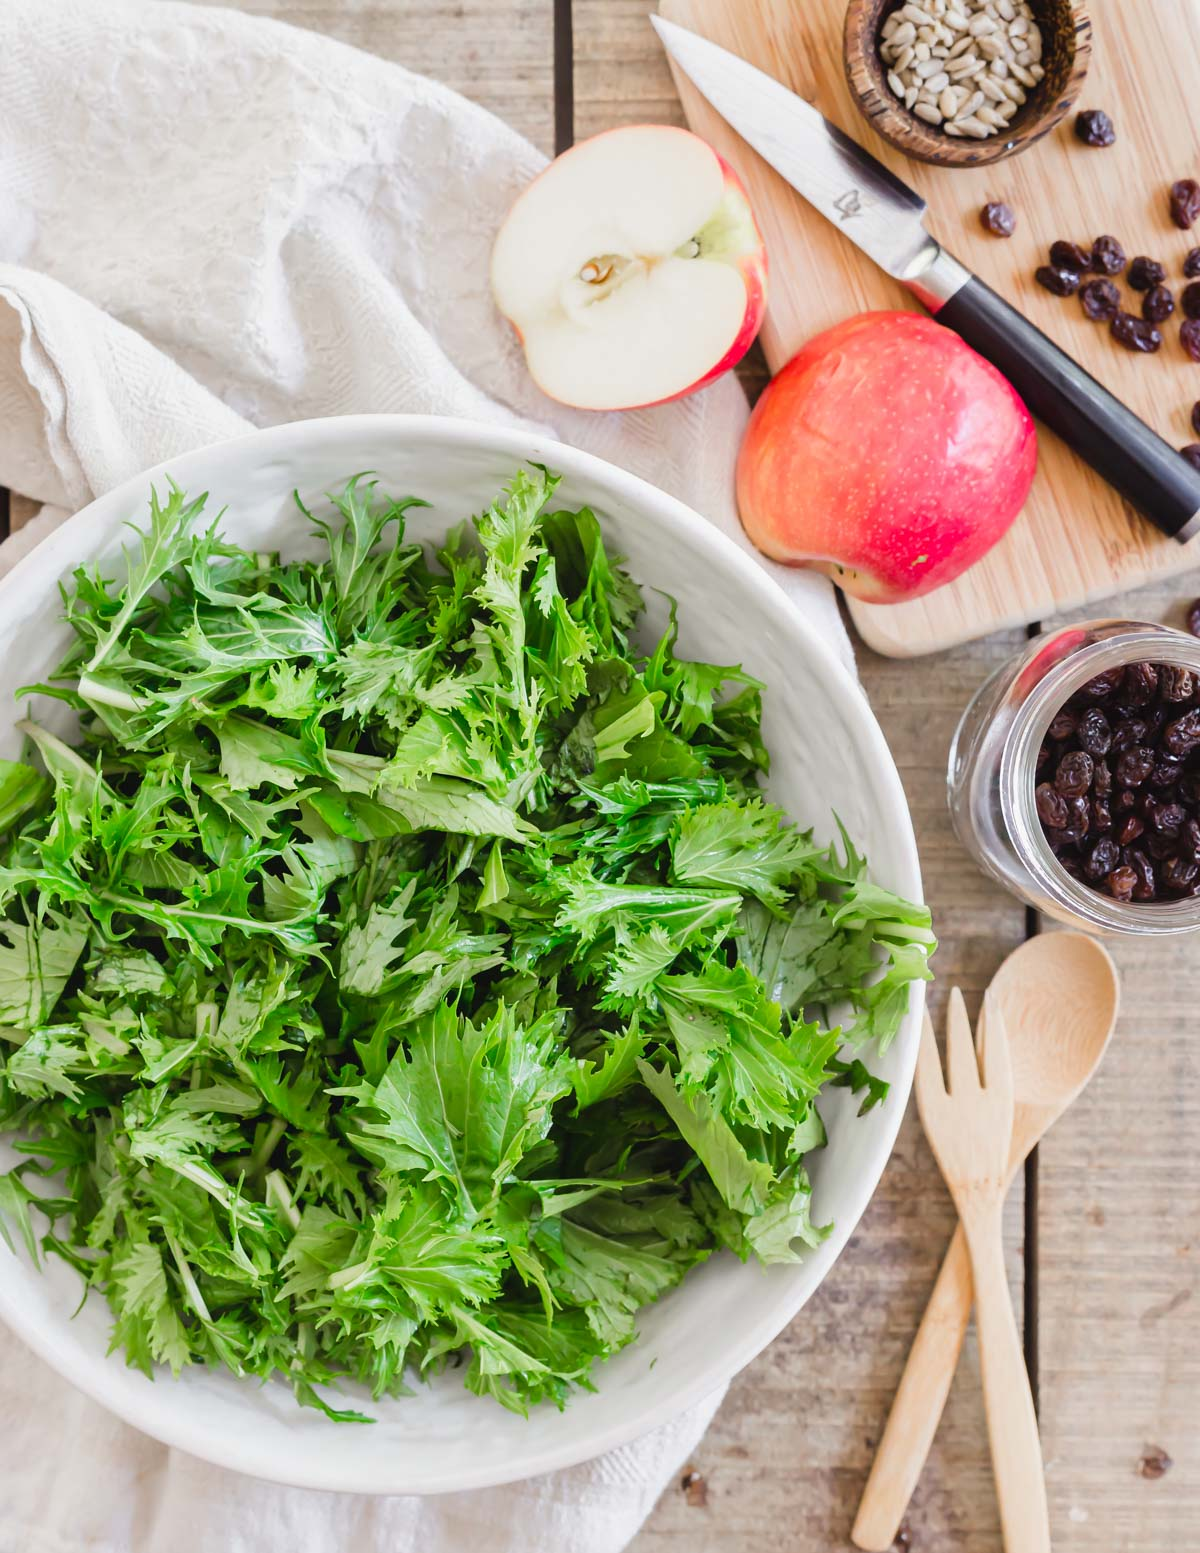 Mizuna lettuce in a bowl with salad components of raisins and an apple on the side.